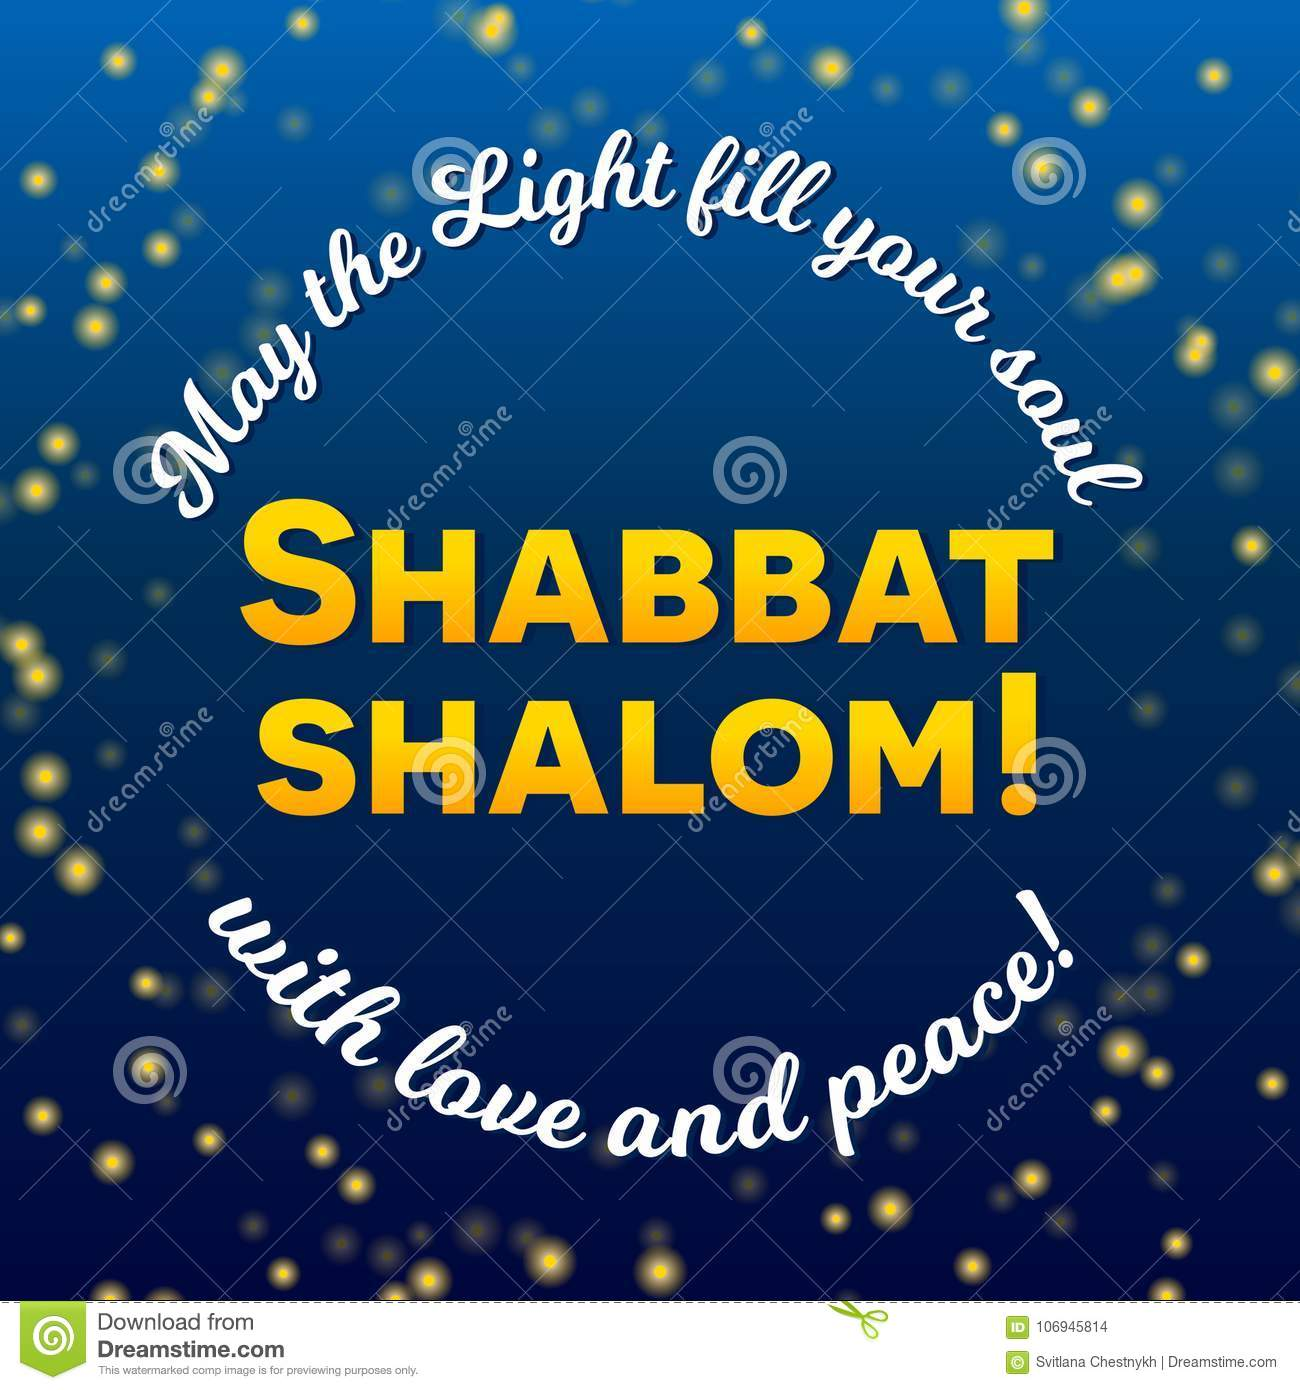 Shabbat shalom candles greeting card lettering starry night sky shabbat shalom candles greeting card lettering starry night sky background m4hsunfo